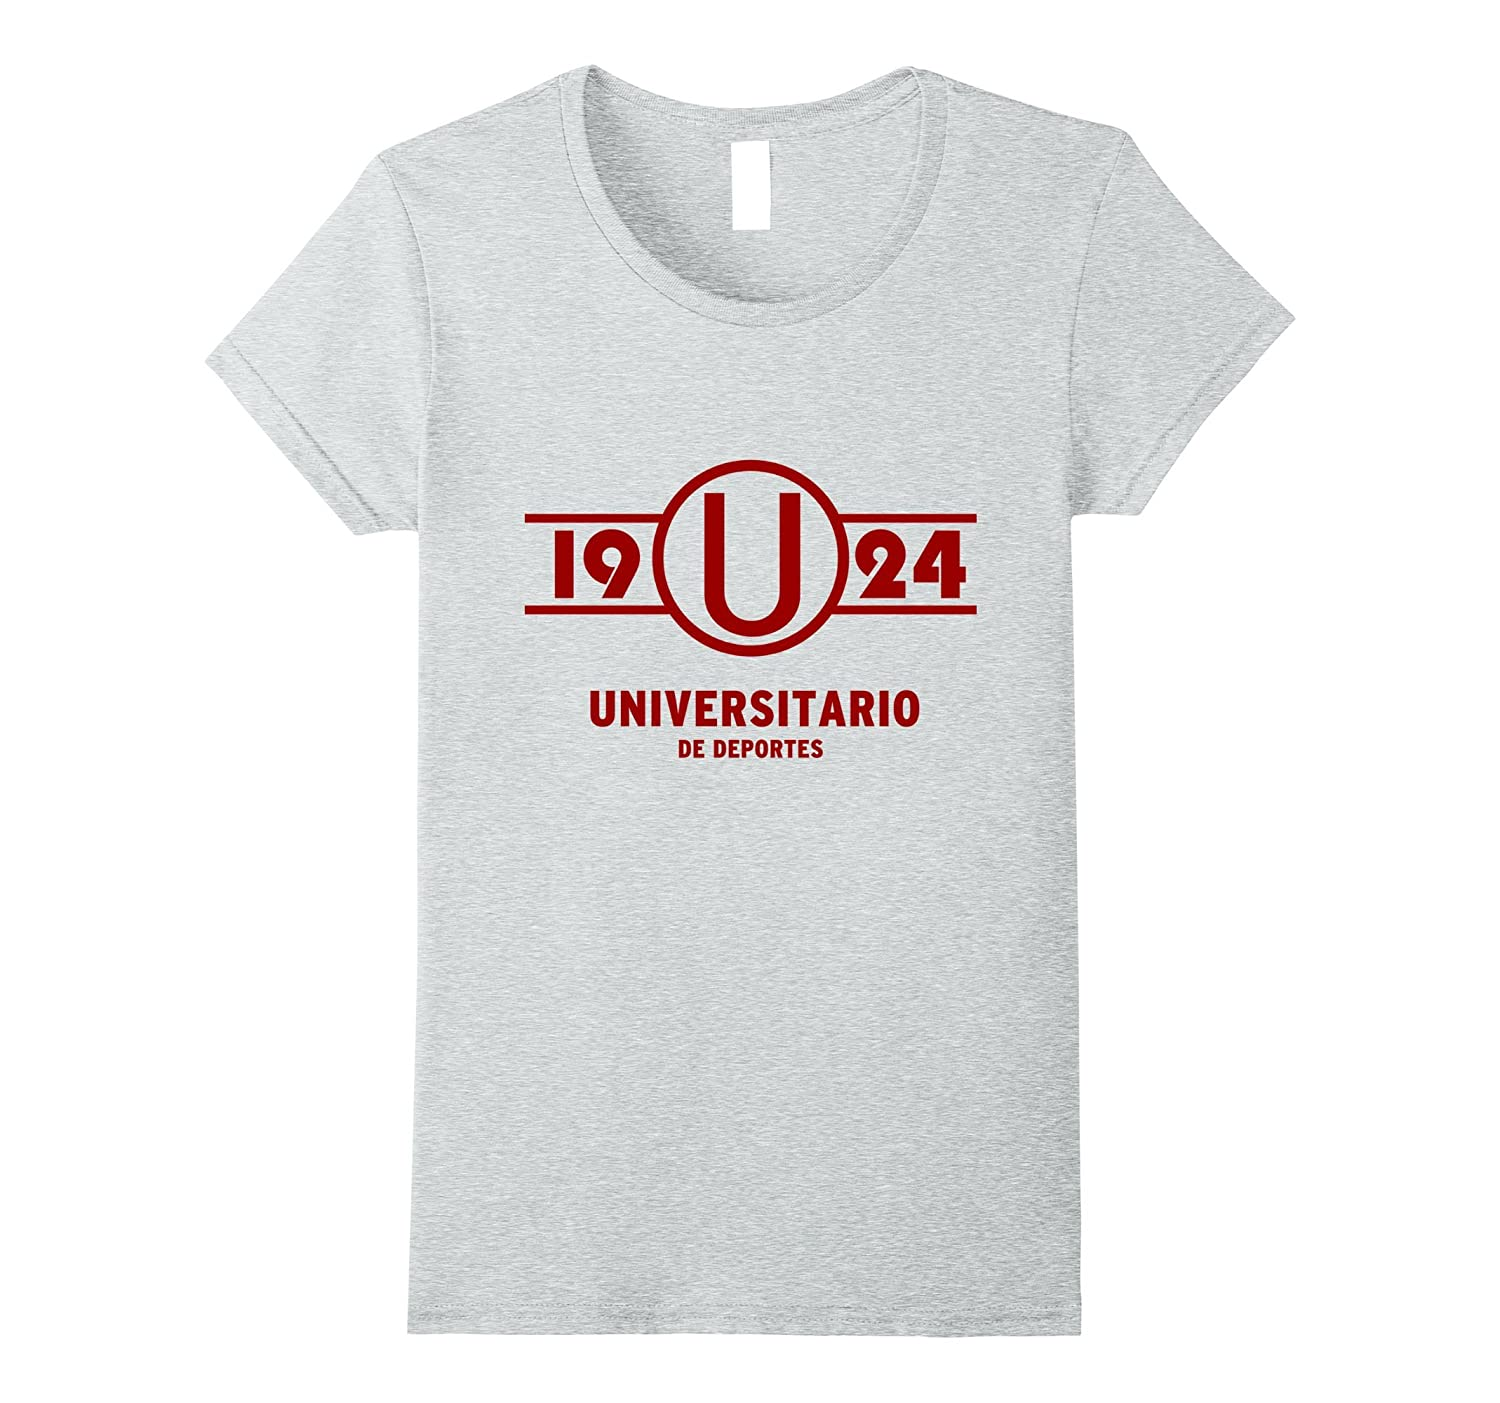 Amazon.com: Club Universitario de Deportes Peru Futbol Soccer TShirt: Clothing